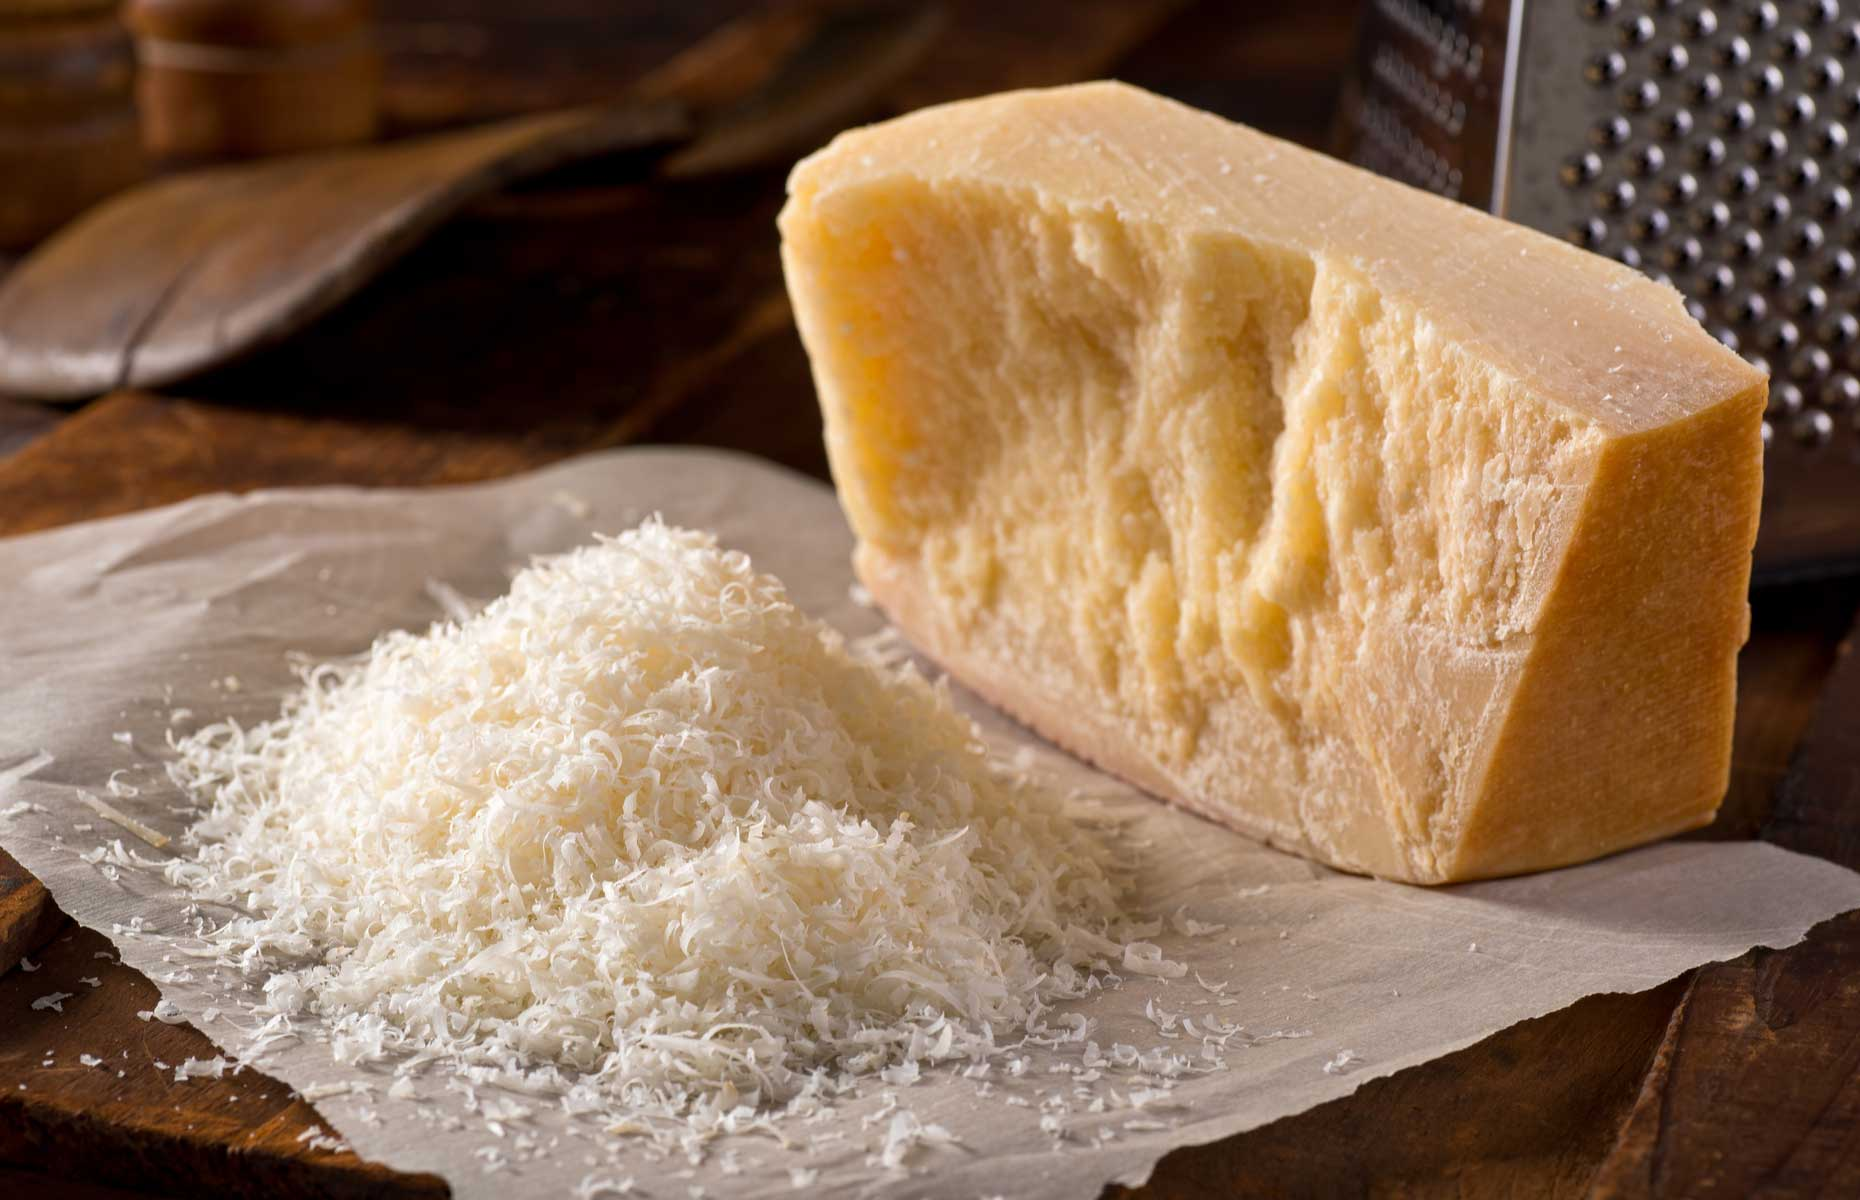 Grated and block of parmesan (Image: Foodio/Shutterstock)